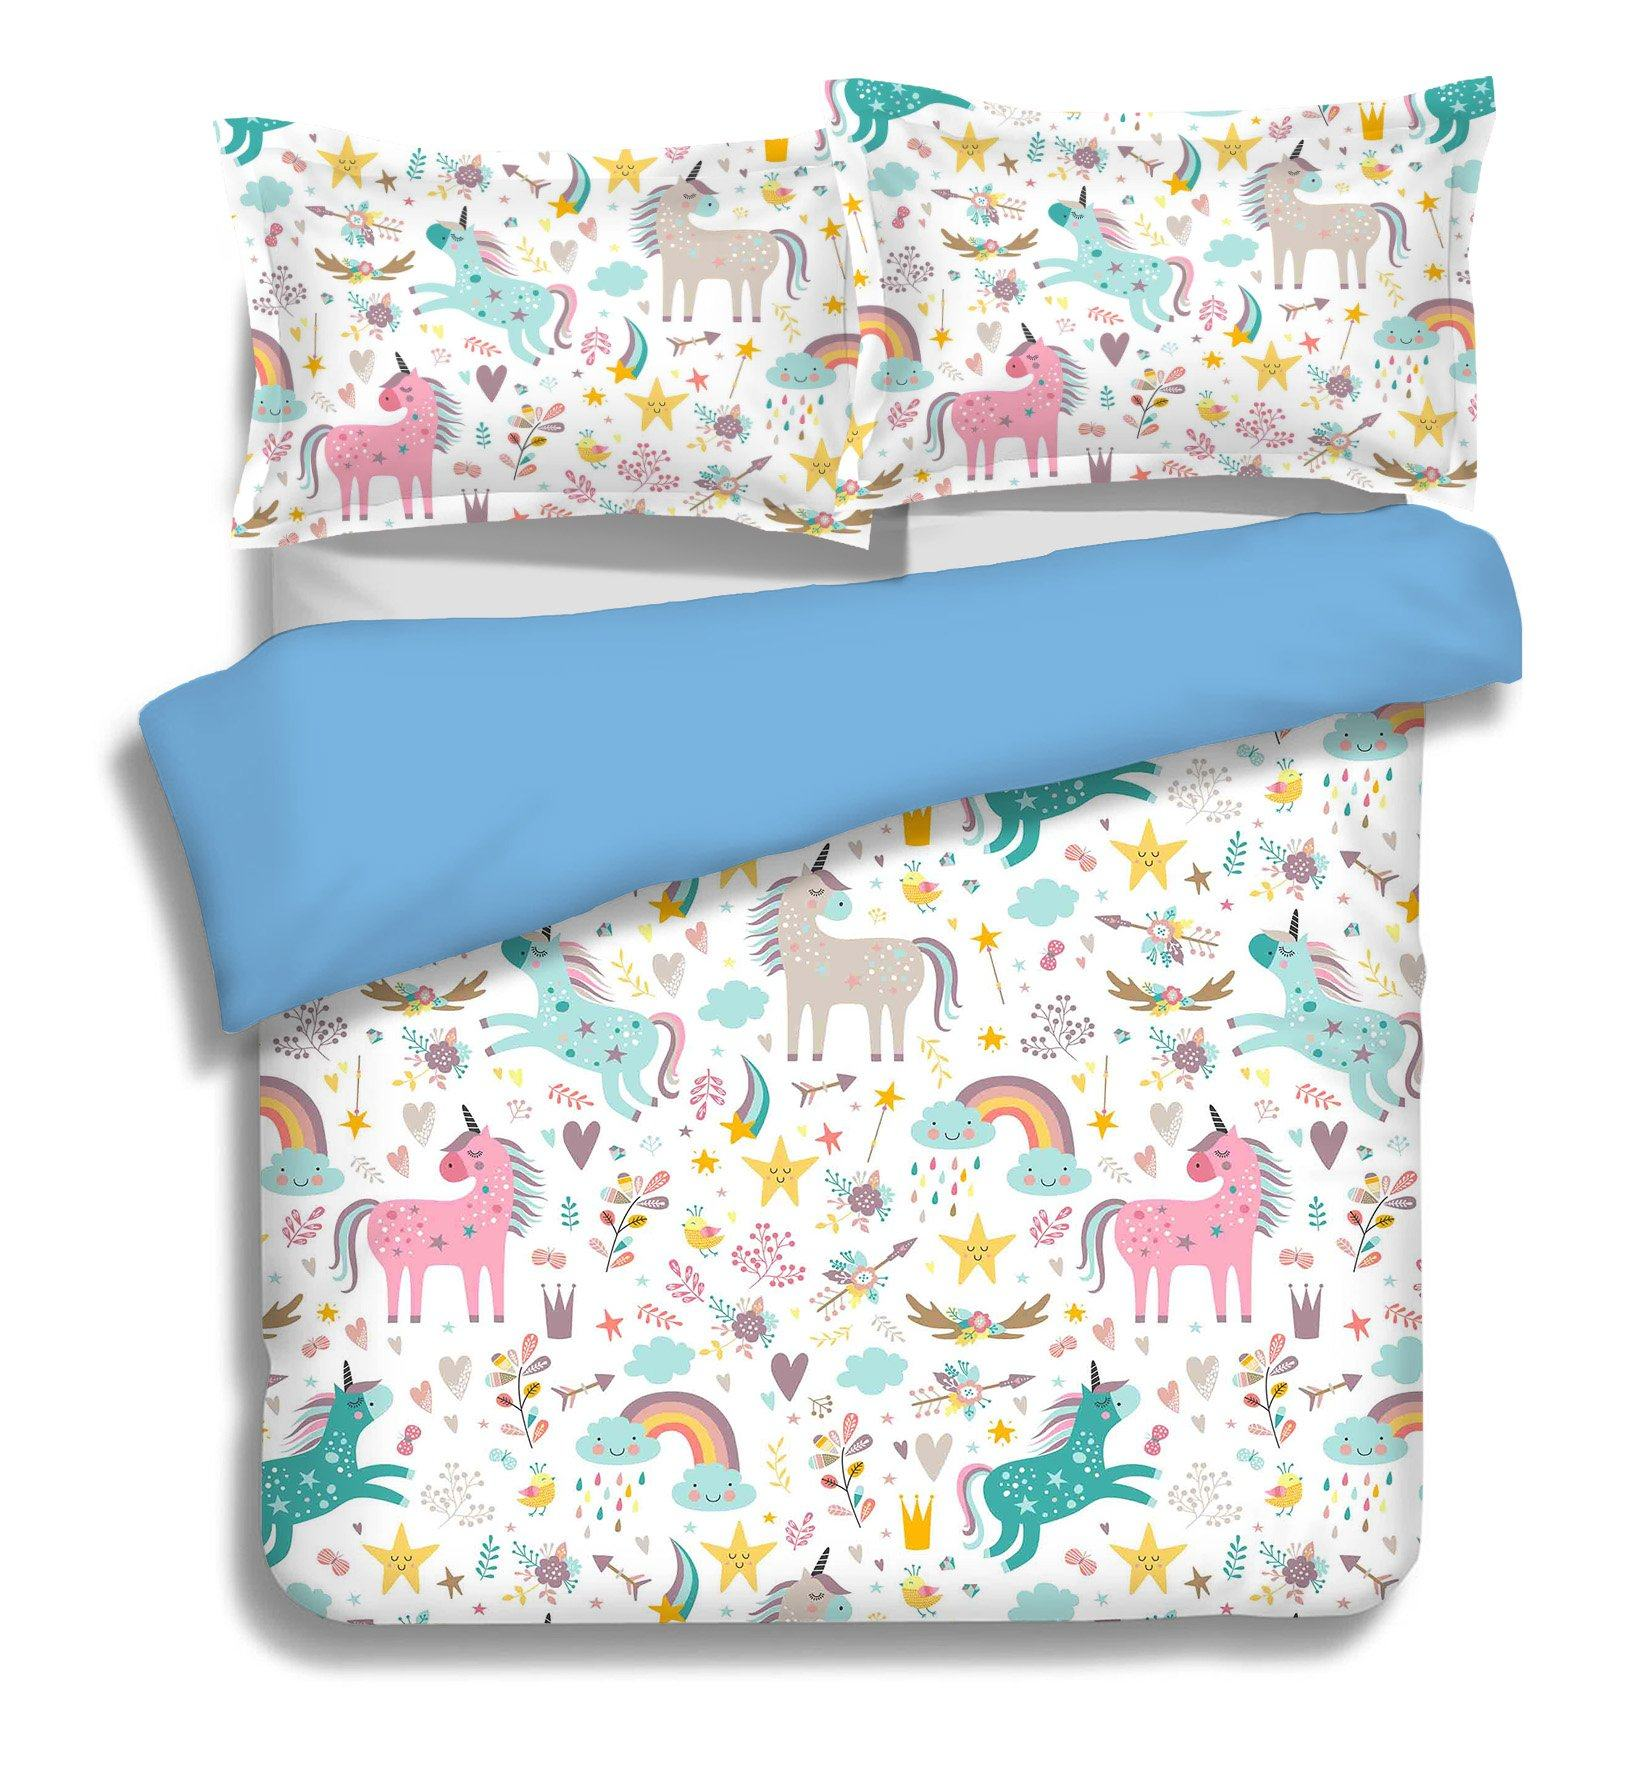 3D Rainbow Horse 072 Bed Pillowcases Quilt Wallpaper AJ Wallpaper